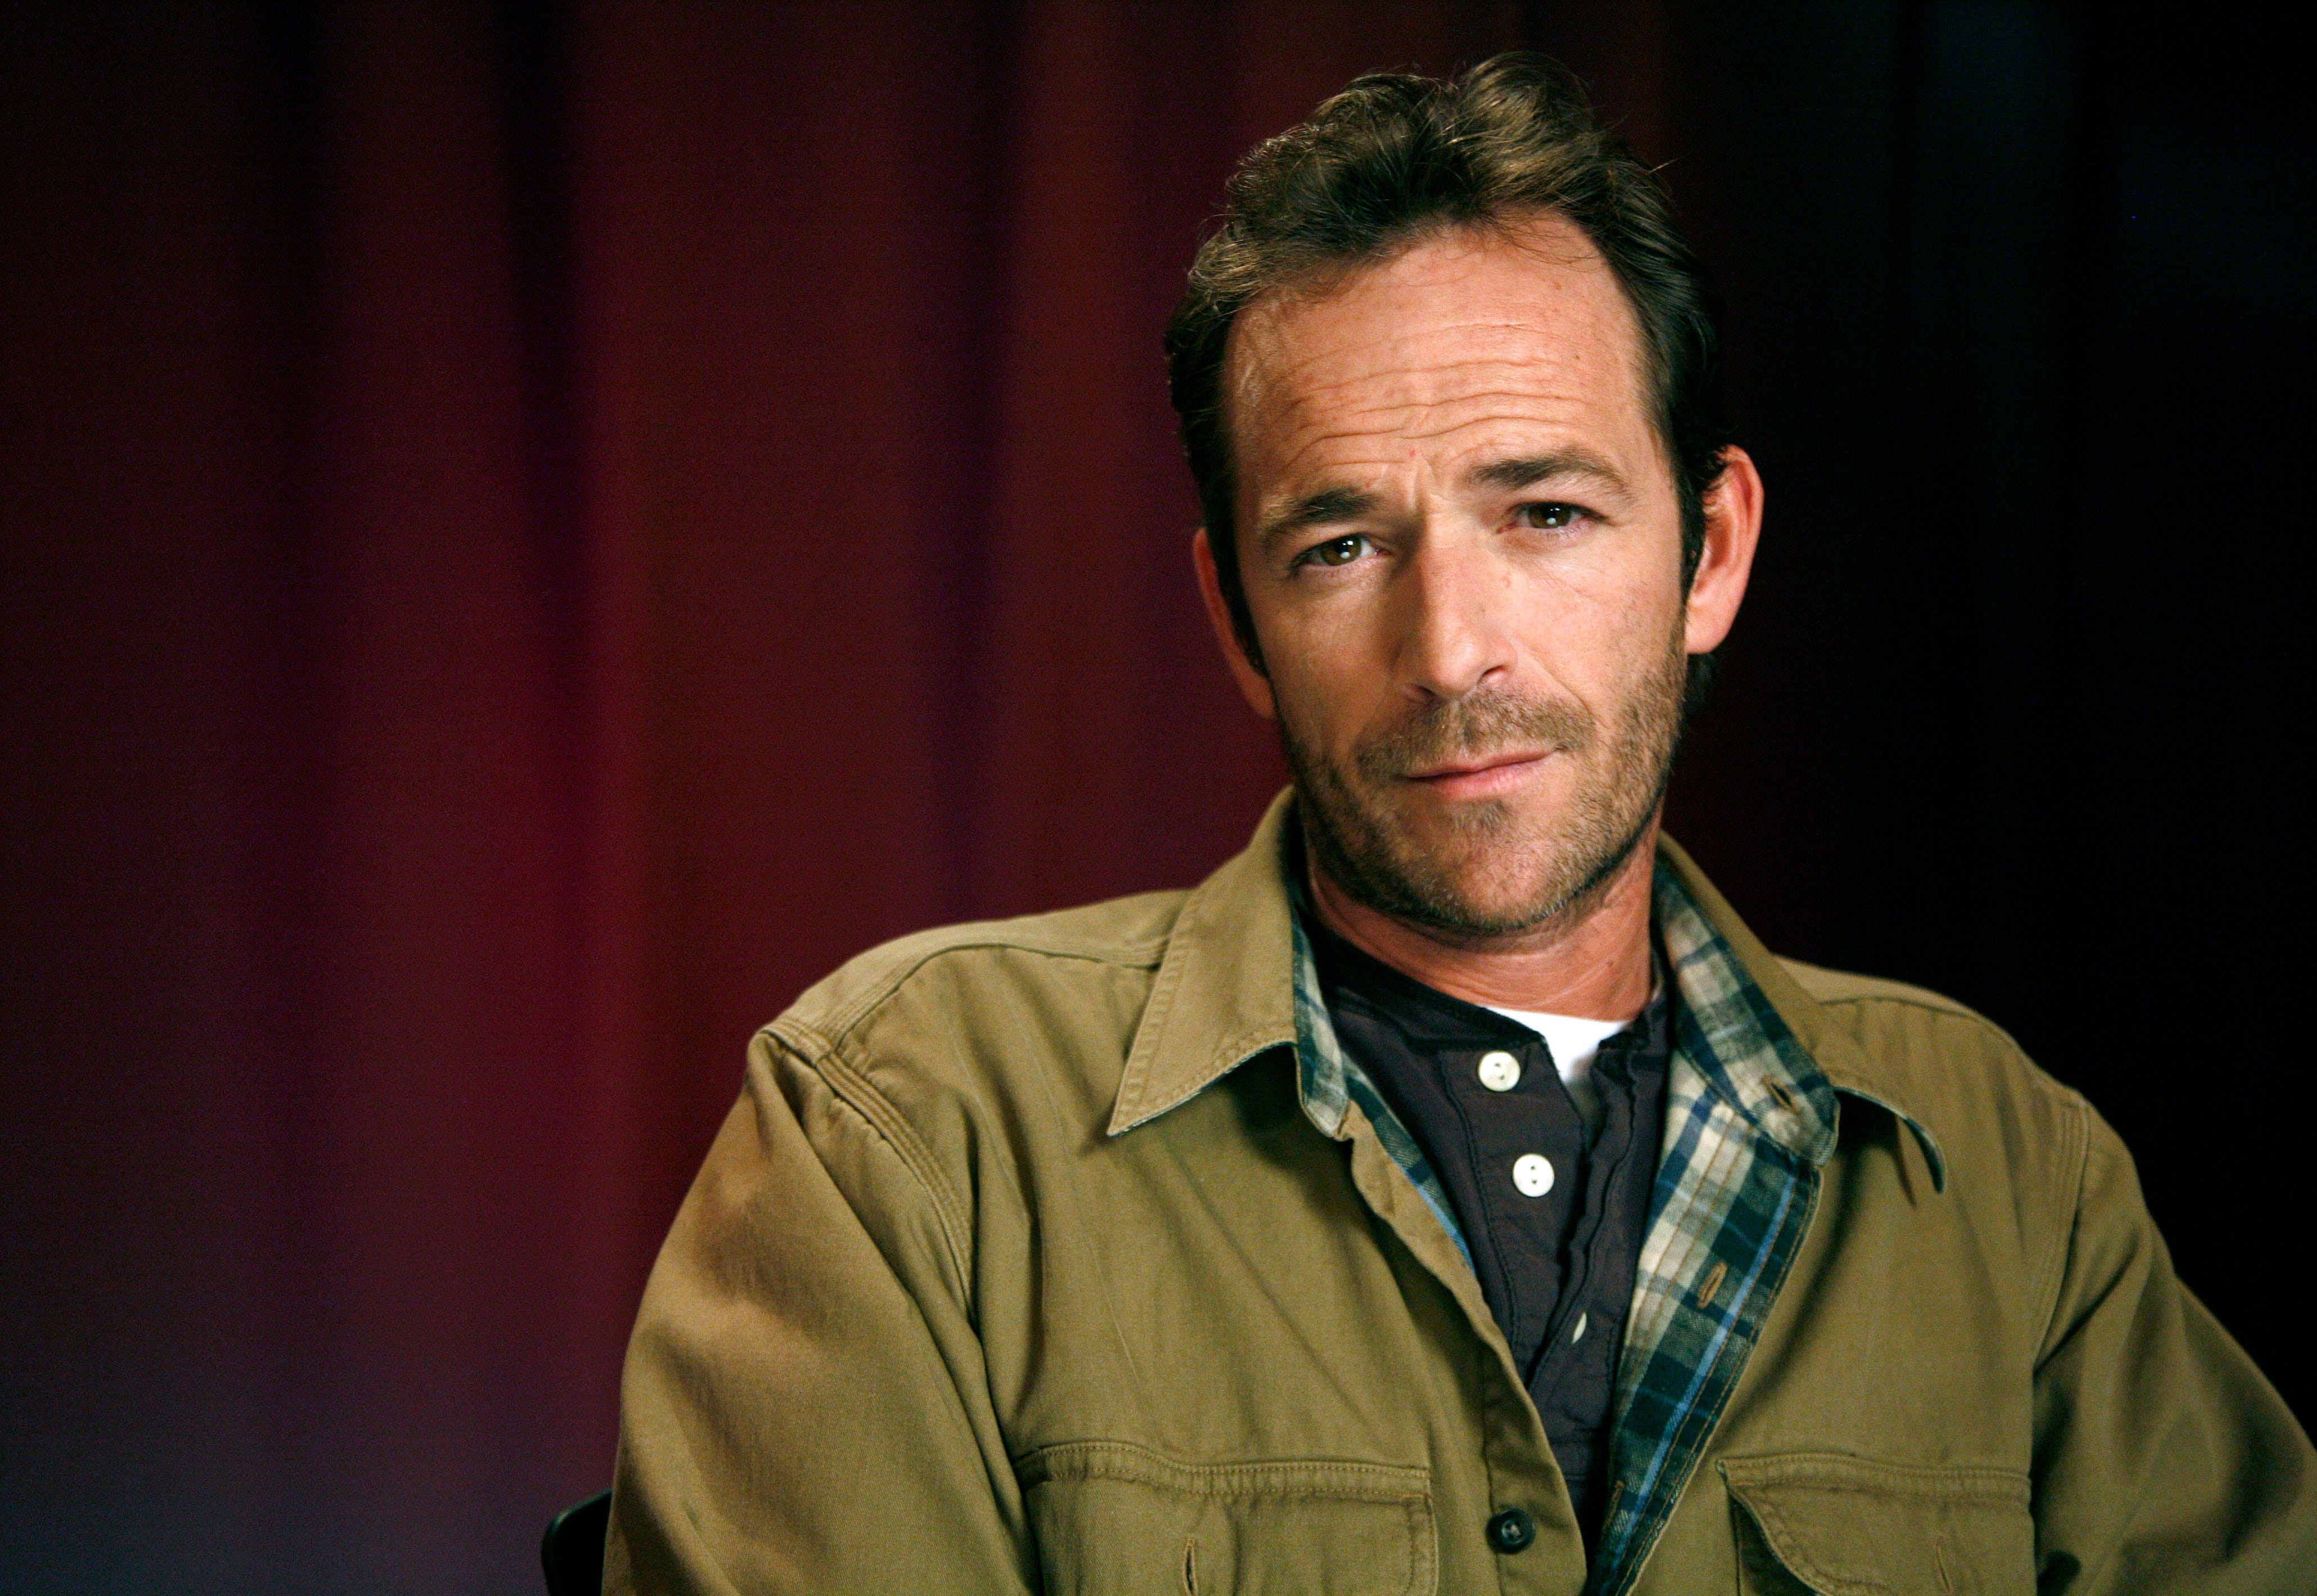 "In this Jan. 26, 2011 file photo, actor Luke Perry poses for a portrait in New York. Perry, who gained instant heartthrob status as wealthy rebel Dylan McKay on ""Beverly Hills, 90210,"" died Monday, March 4, 2019, after suffering a massive stroke, his publicist said. He was 52."